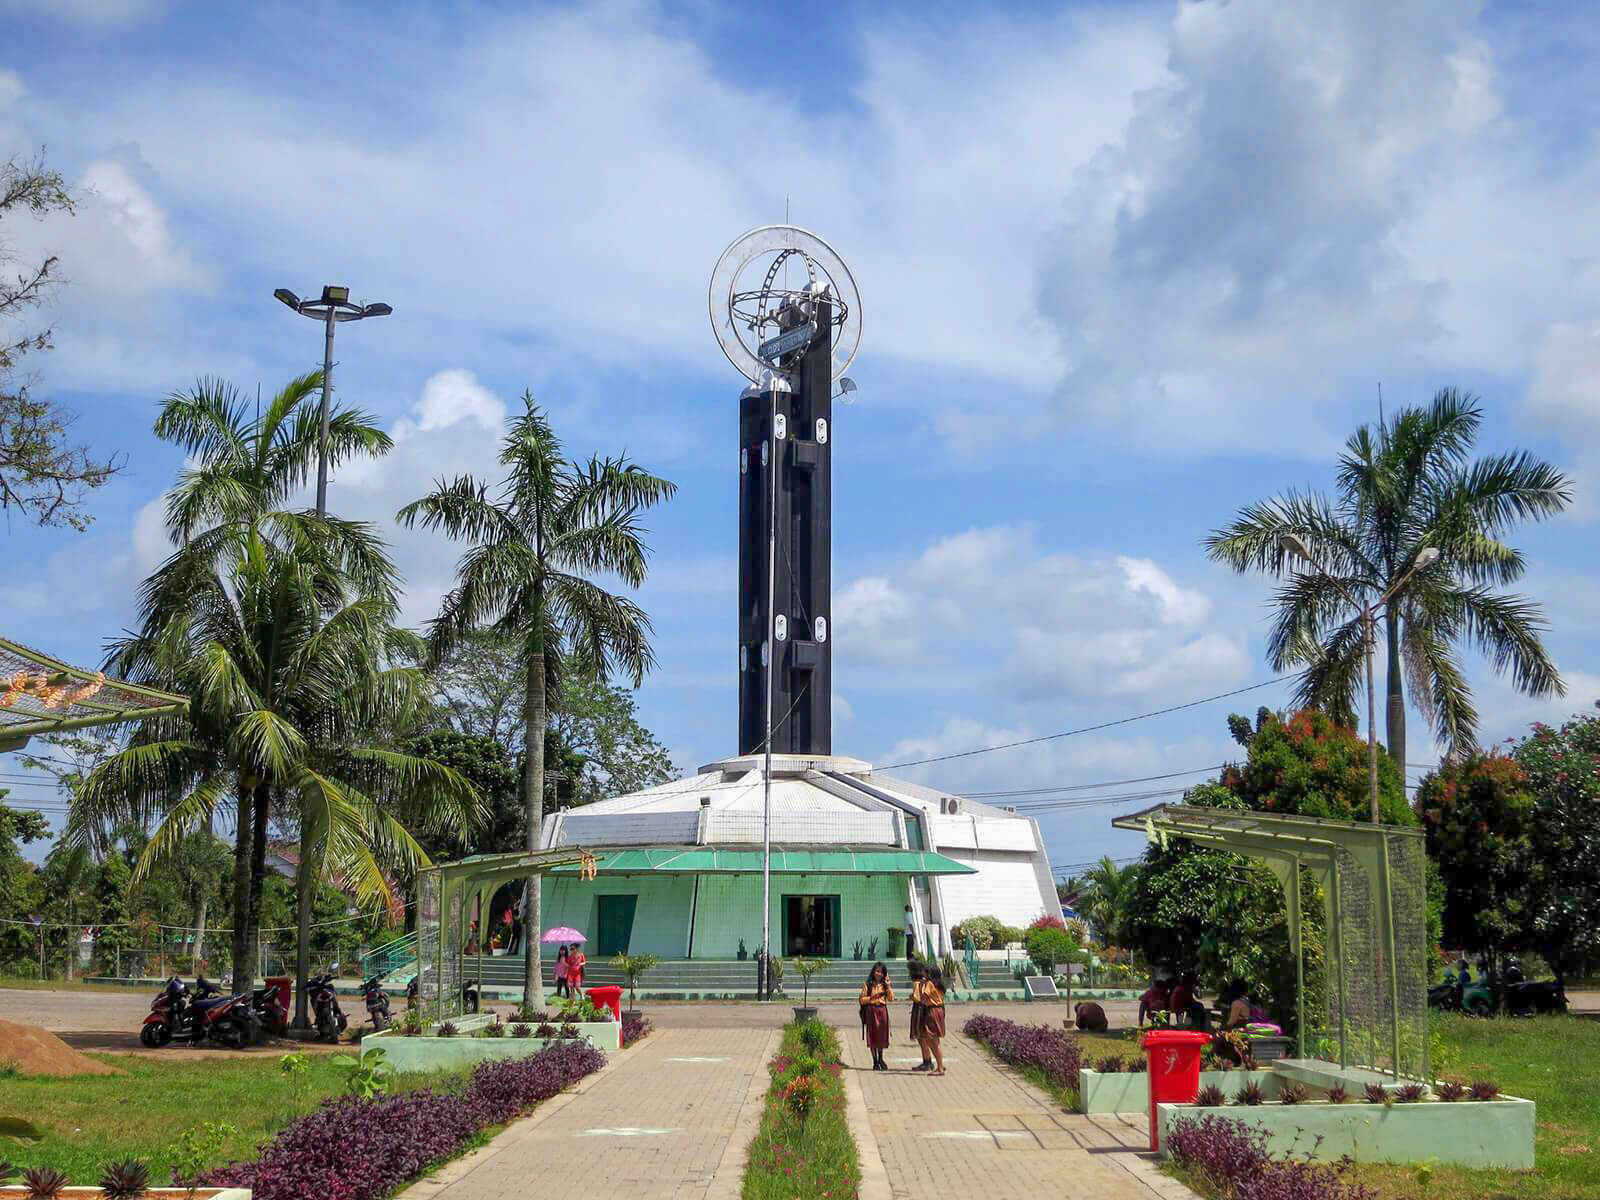 The Pontianak Equator Monument is not actually on the equator. That is why it is one of the unique and offbeat destinations of Indonesia.